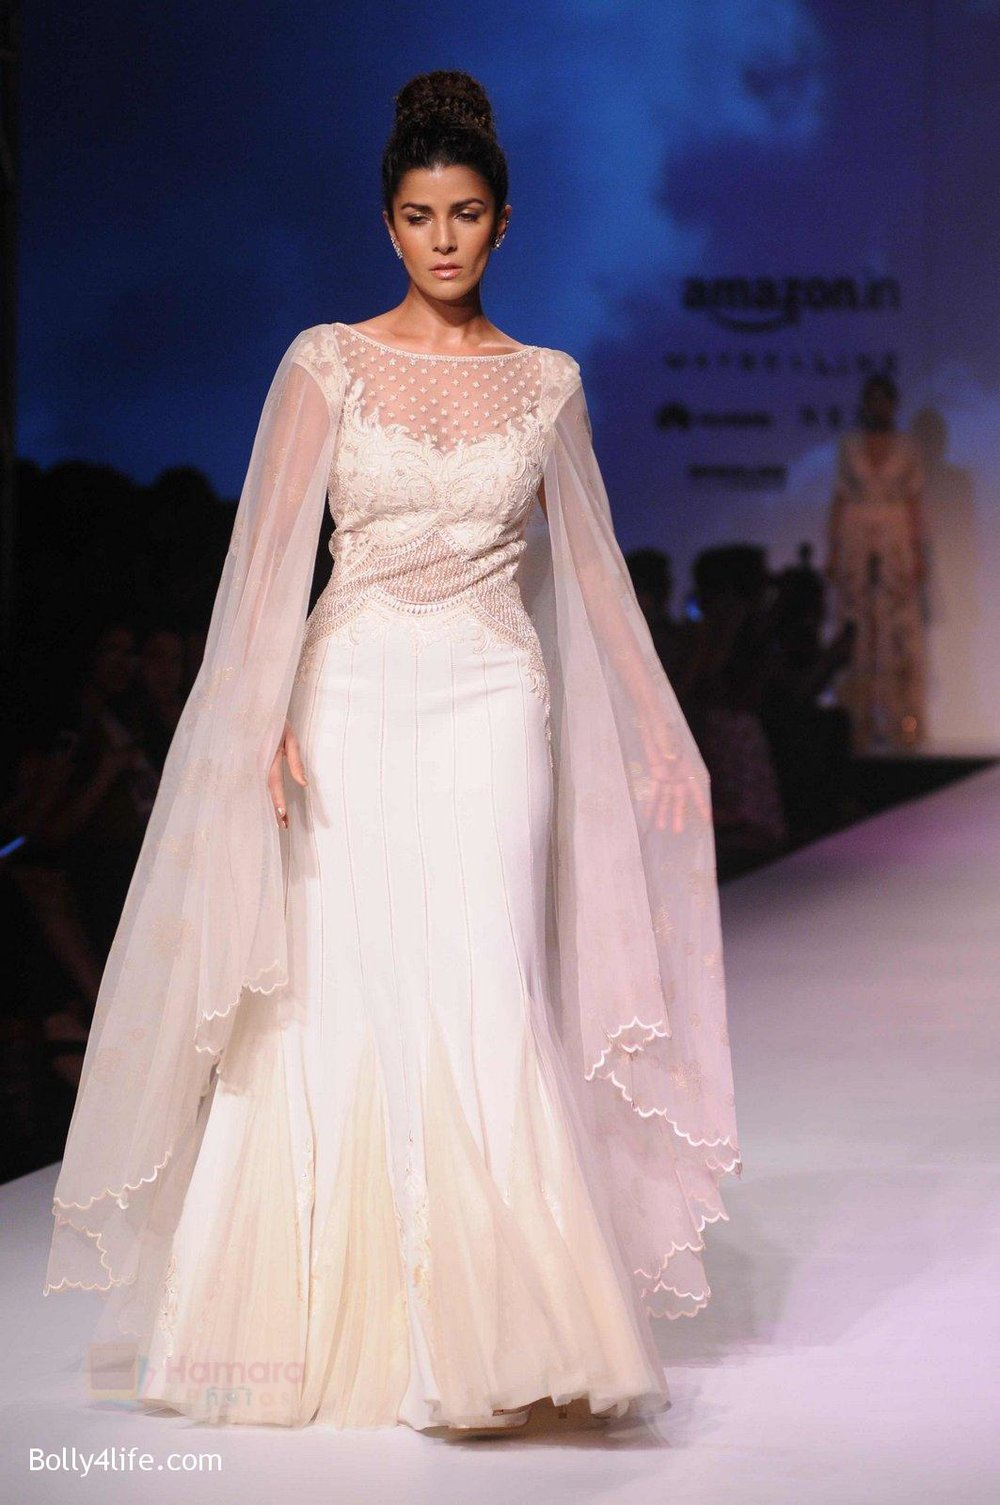 Nimrat-Kaur-walk-the-ramp-for-Mandira-Wrik_s-show-at-Amazon-India-Fashion-Week-on-15th-Oct-2016-45.jpg